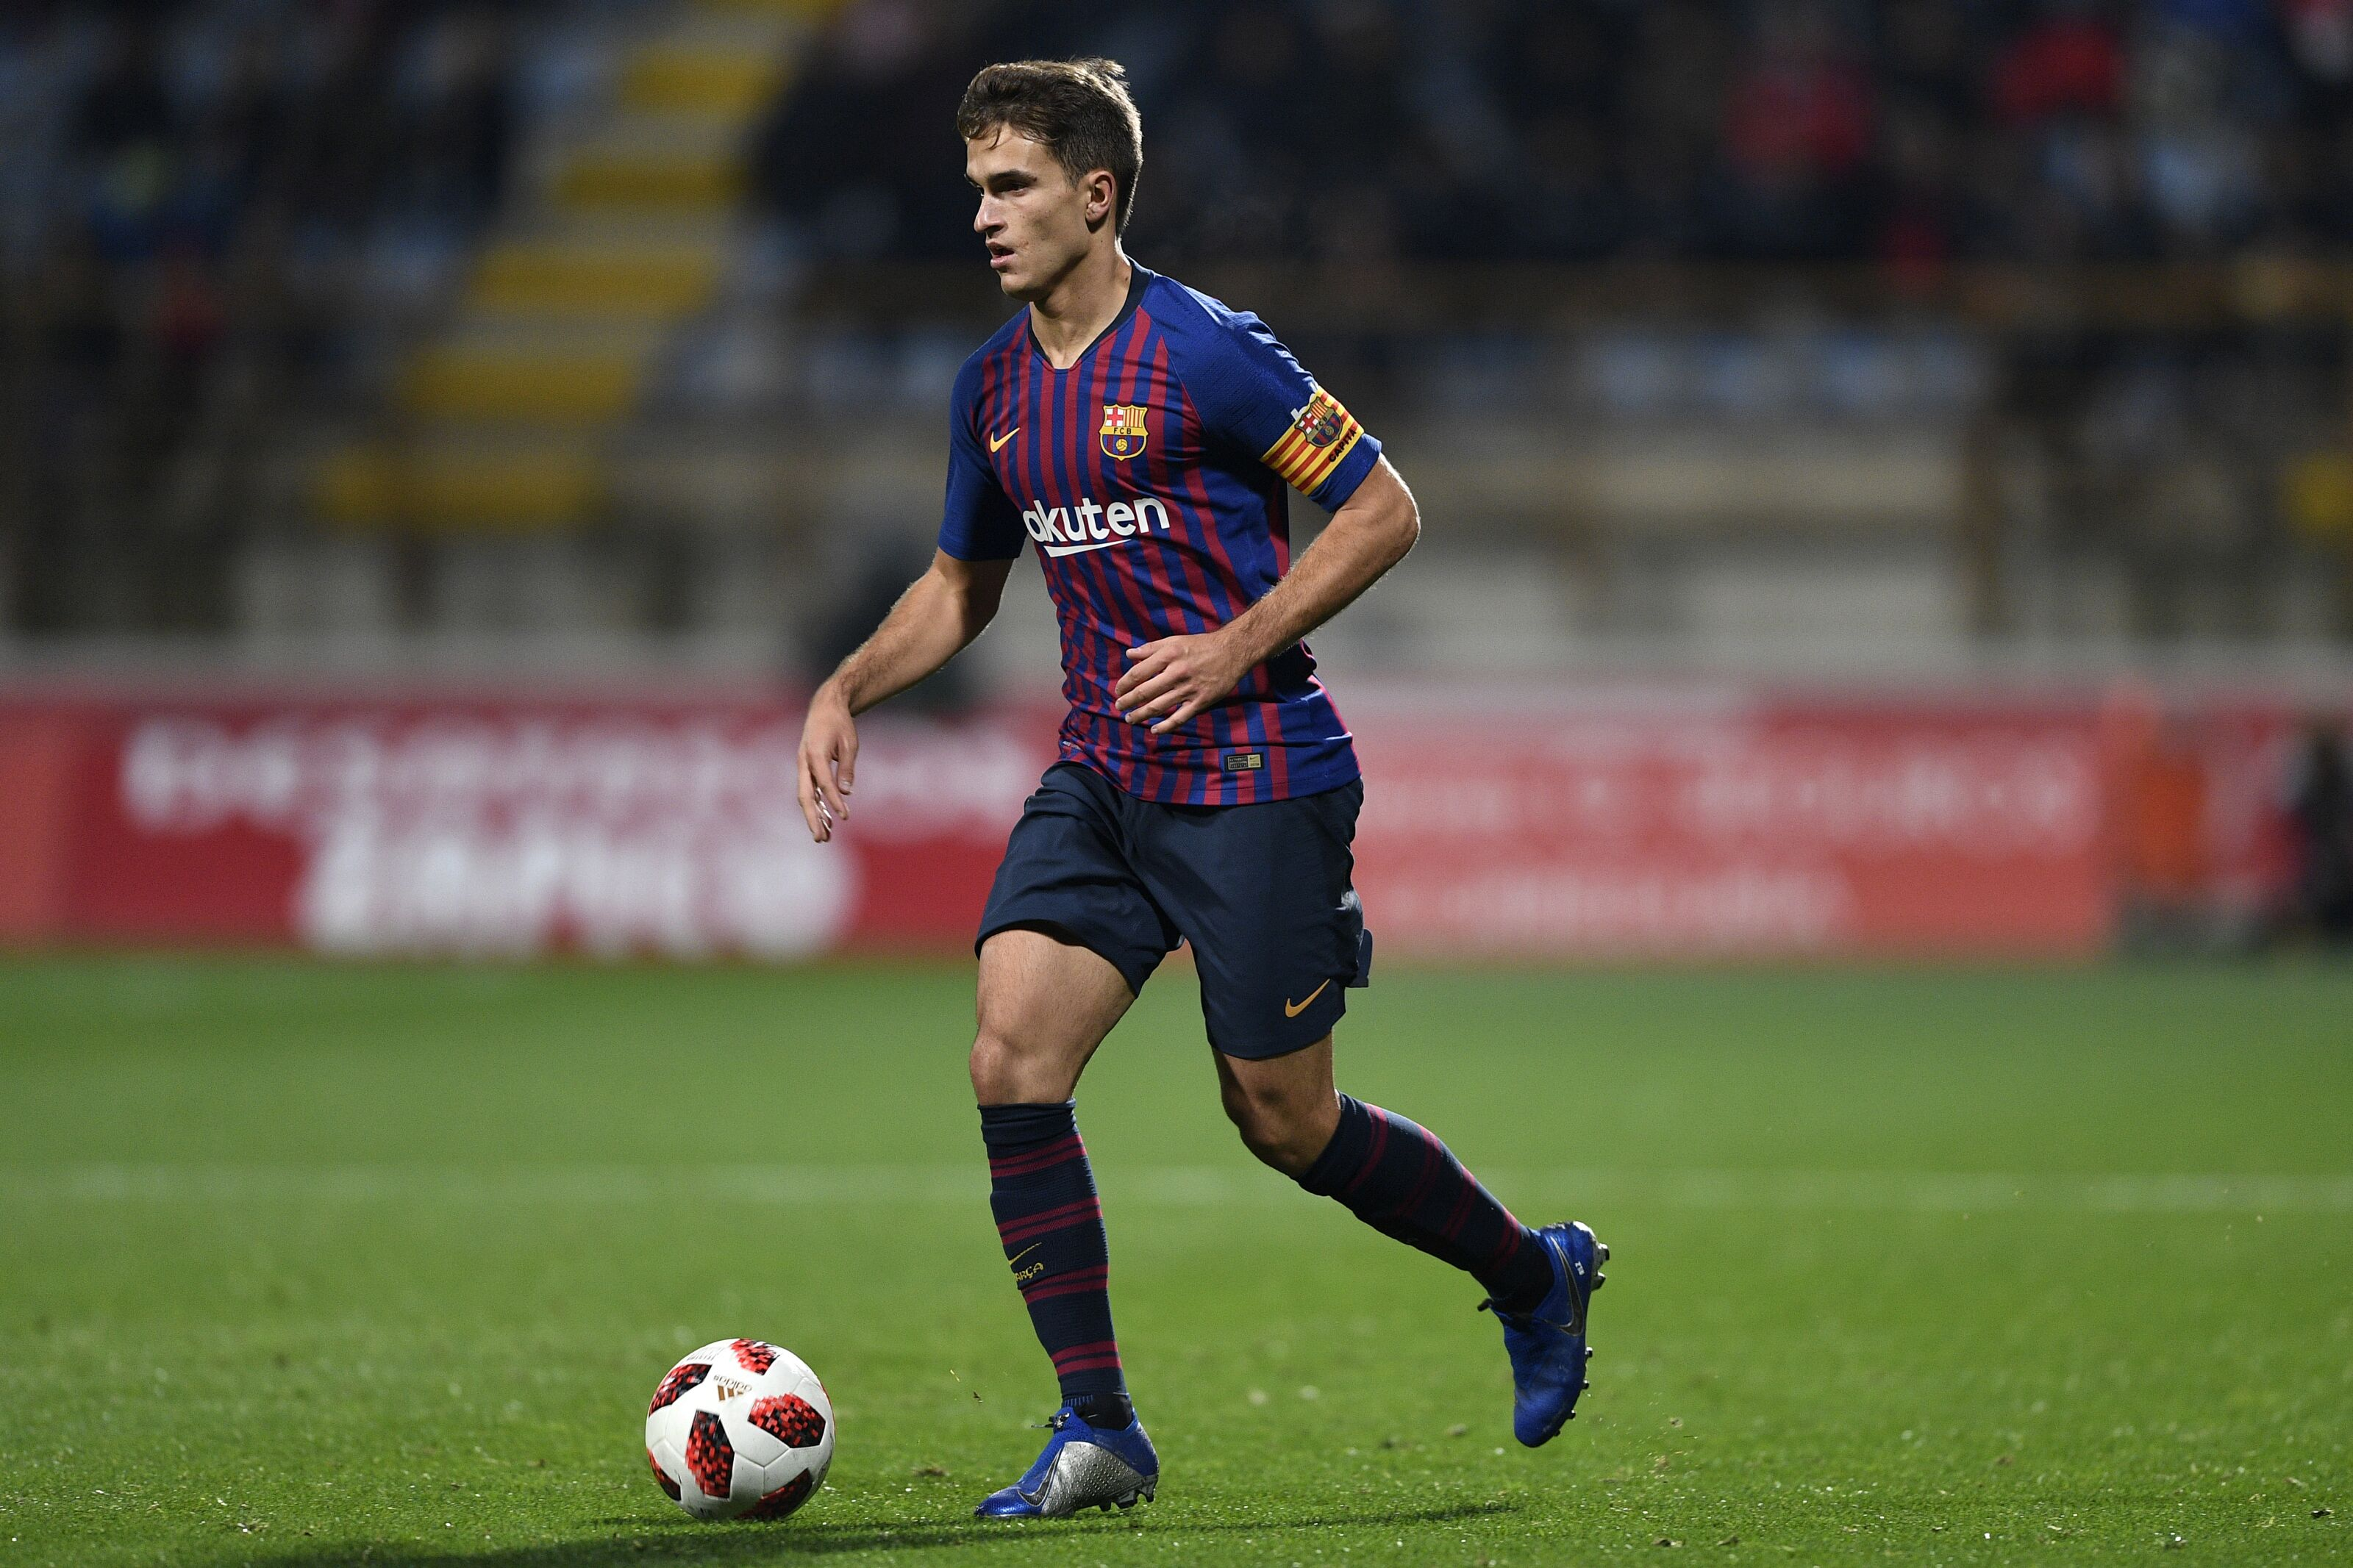 Arsenal: Denis Suarez for Aaron Ramsey worth digging into